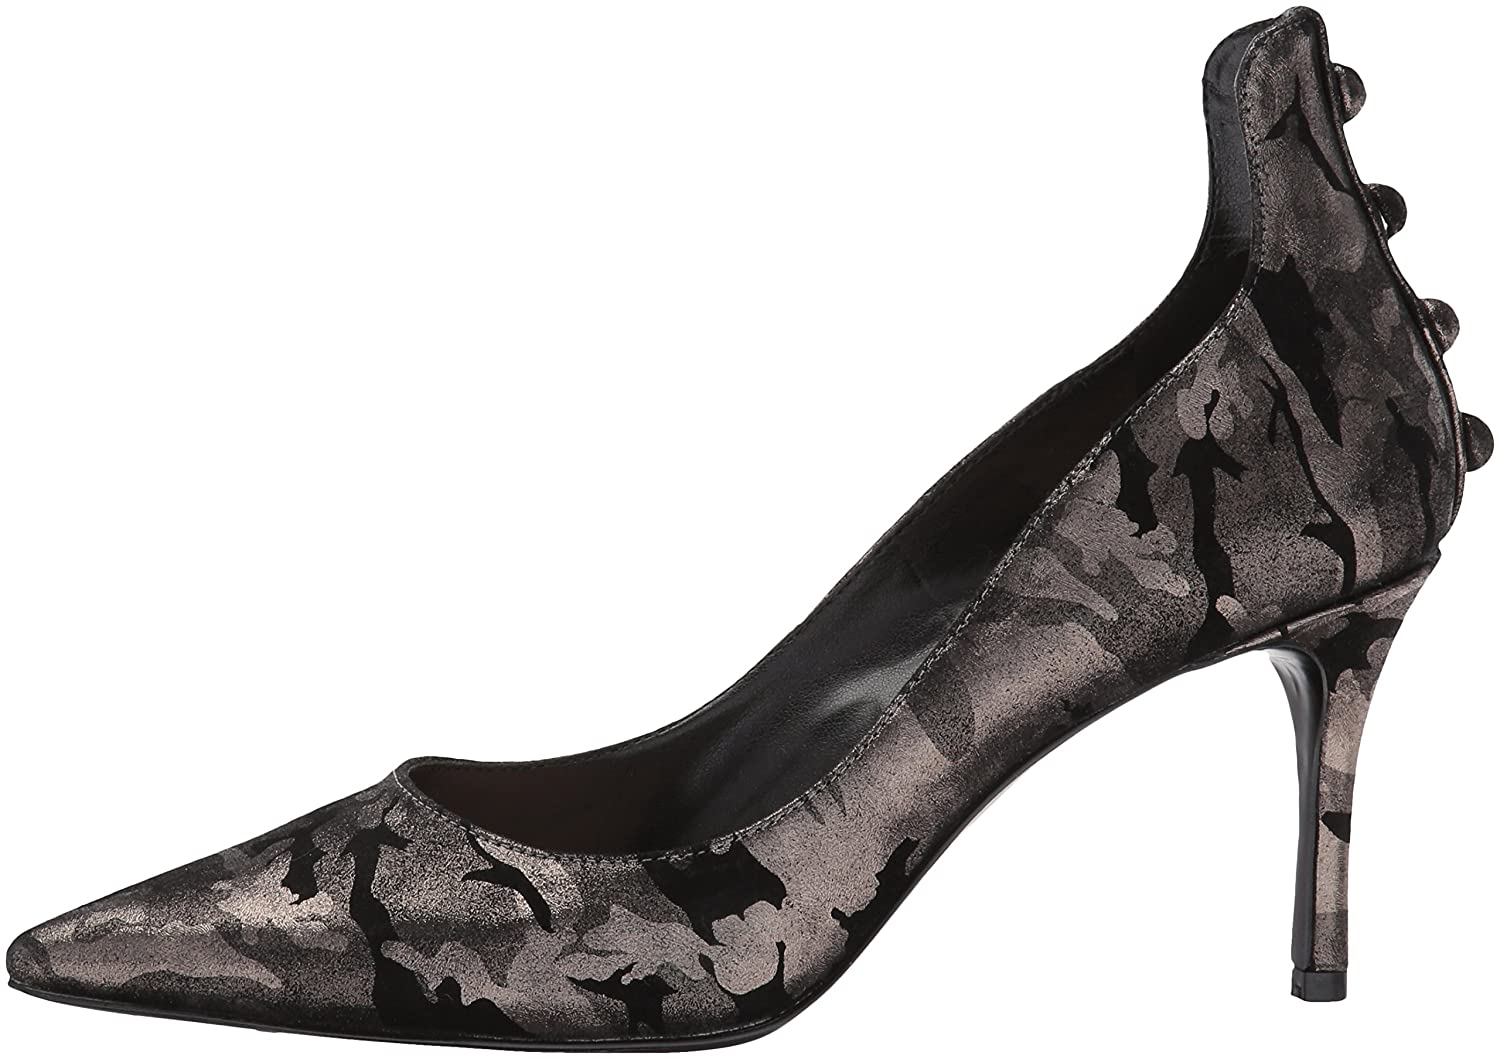 Nine West Women's Maqui Pump B01MUWLC5S 7 B(M) US|Pewter Metallic